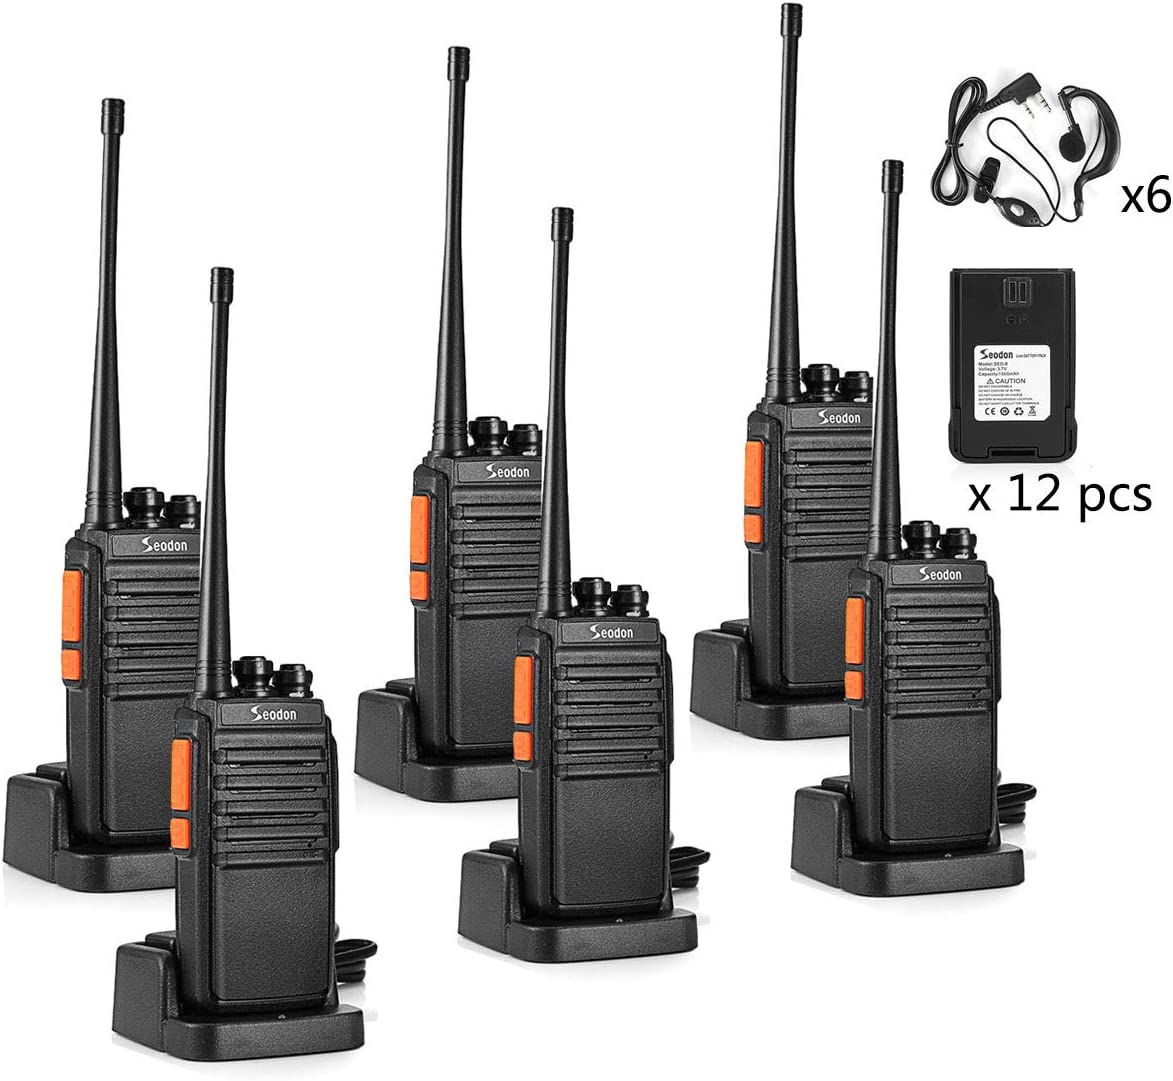 Seodon Walkie Talkies for Adults Long Range 6 Pack Rechargeable Two Way Radio with 12 Pcs Li-on Batteries up to 3 Miles Range in The Open Filed UHF 400-470 Mhz with Headphone Earpieces